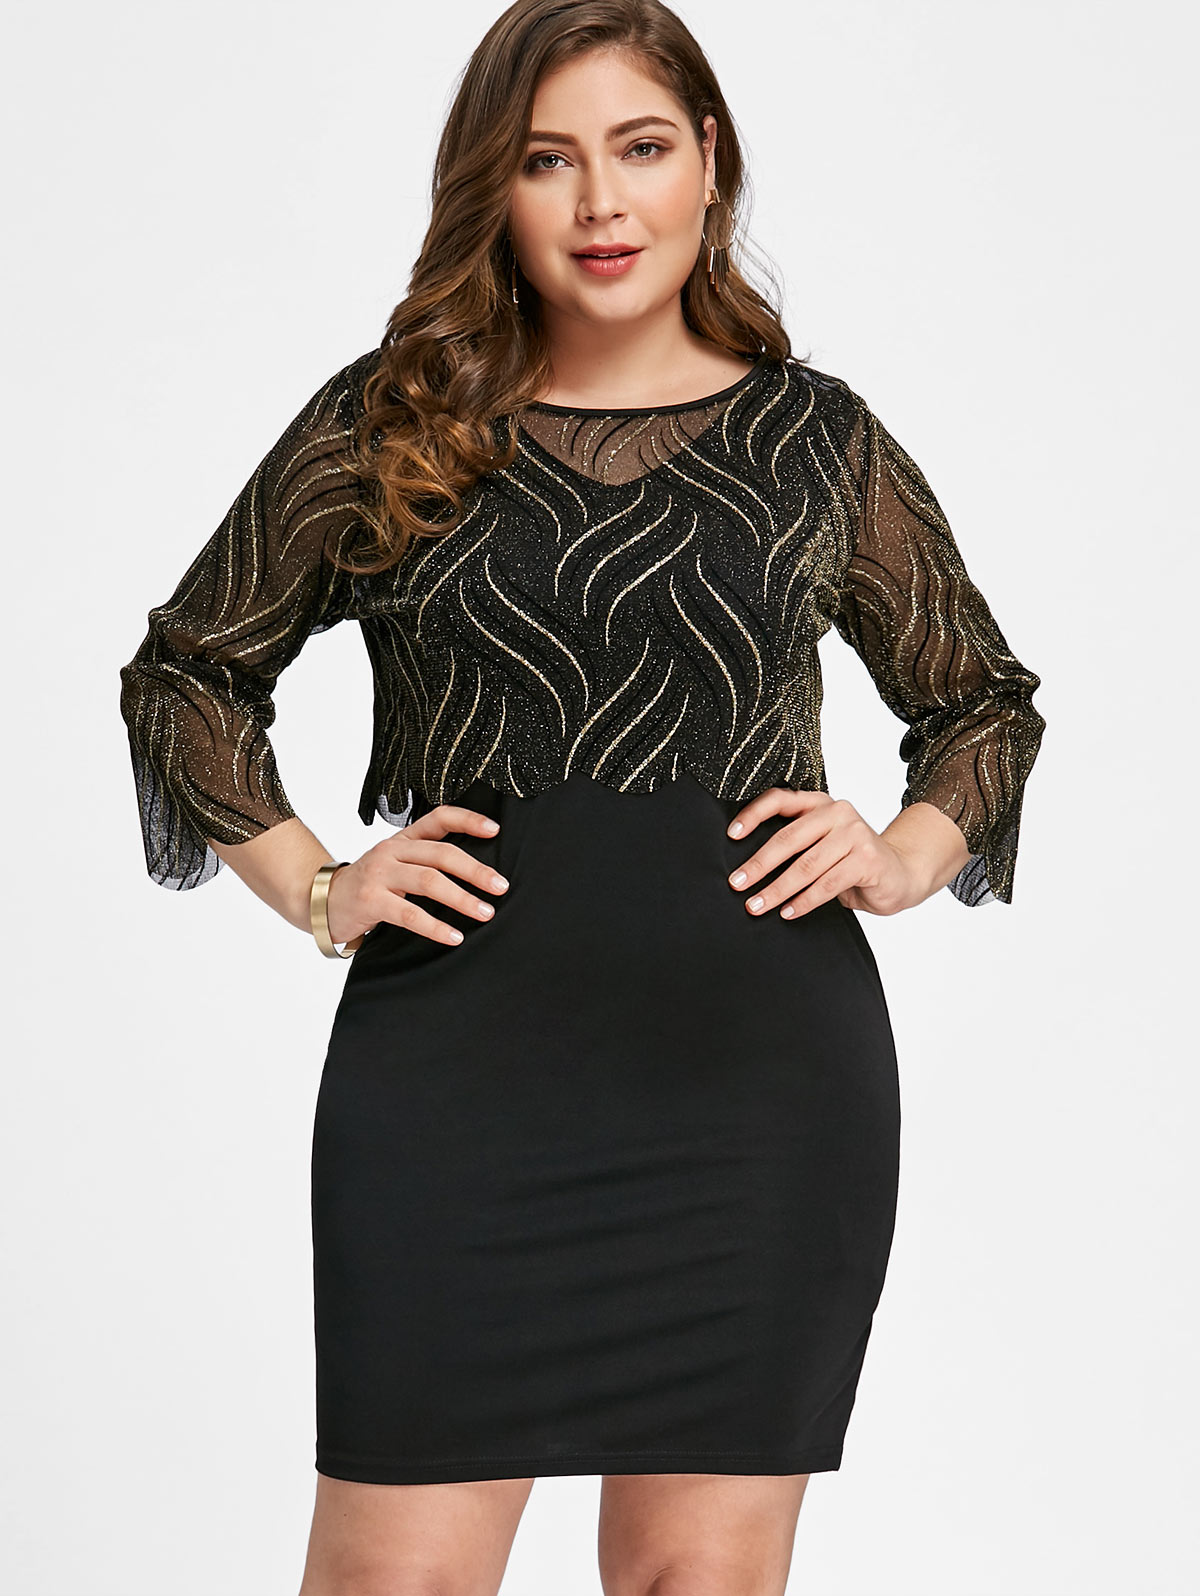 9a347248d6 Gamiss Women Two Piece Dress Plus Size Shining Crop Top With Fitted Dress  3/4 Length Sleeves Bodycon Pencil Dresses Vestidos